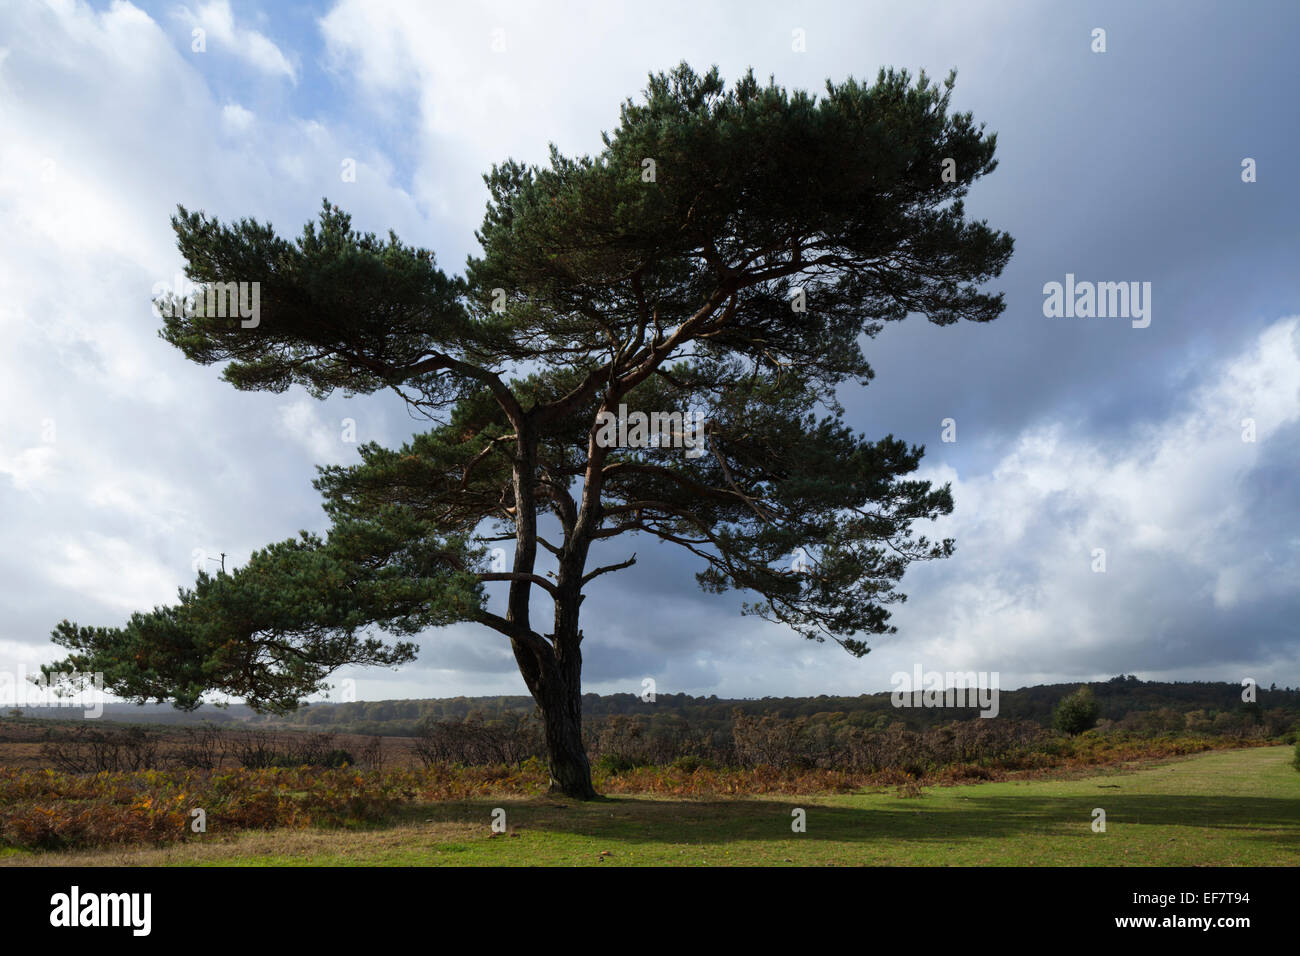 Lone pine tree and heathland views set against a stormy sky at Bratley View in the New Forest National Park, Hampshire, - Stock Image